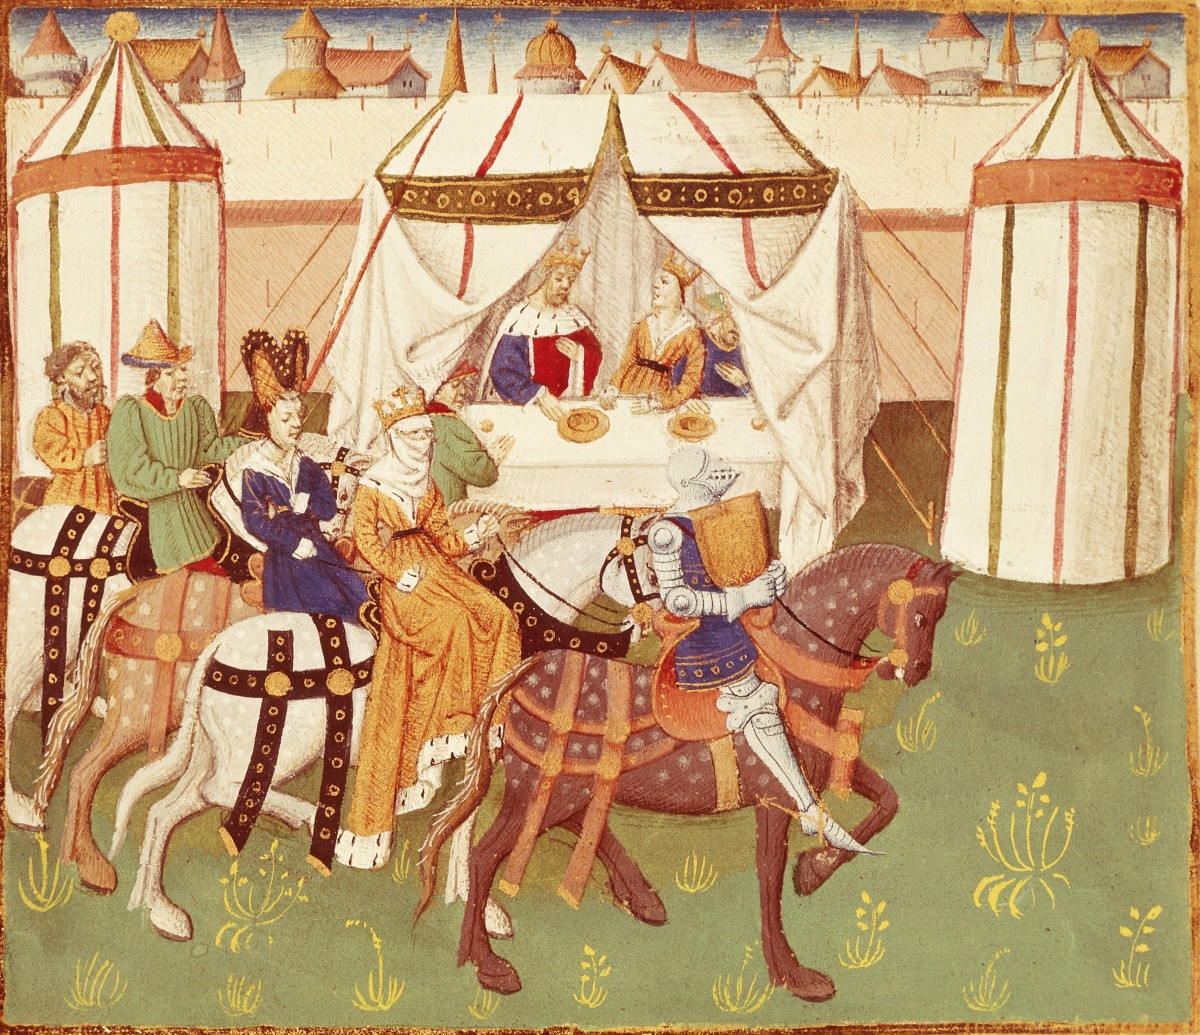 Illustration of King Arthur feast in Camelot by Thomas of Britain